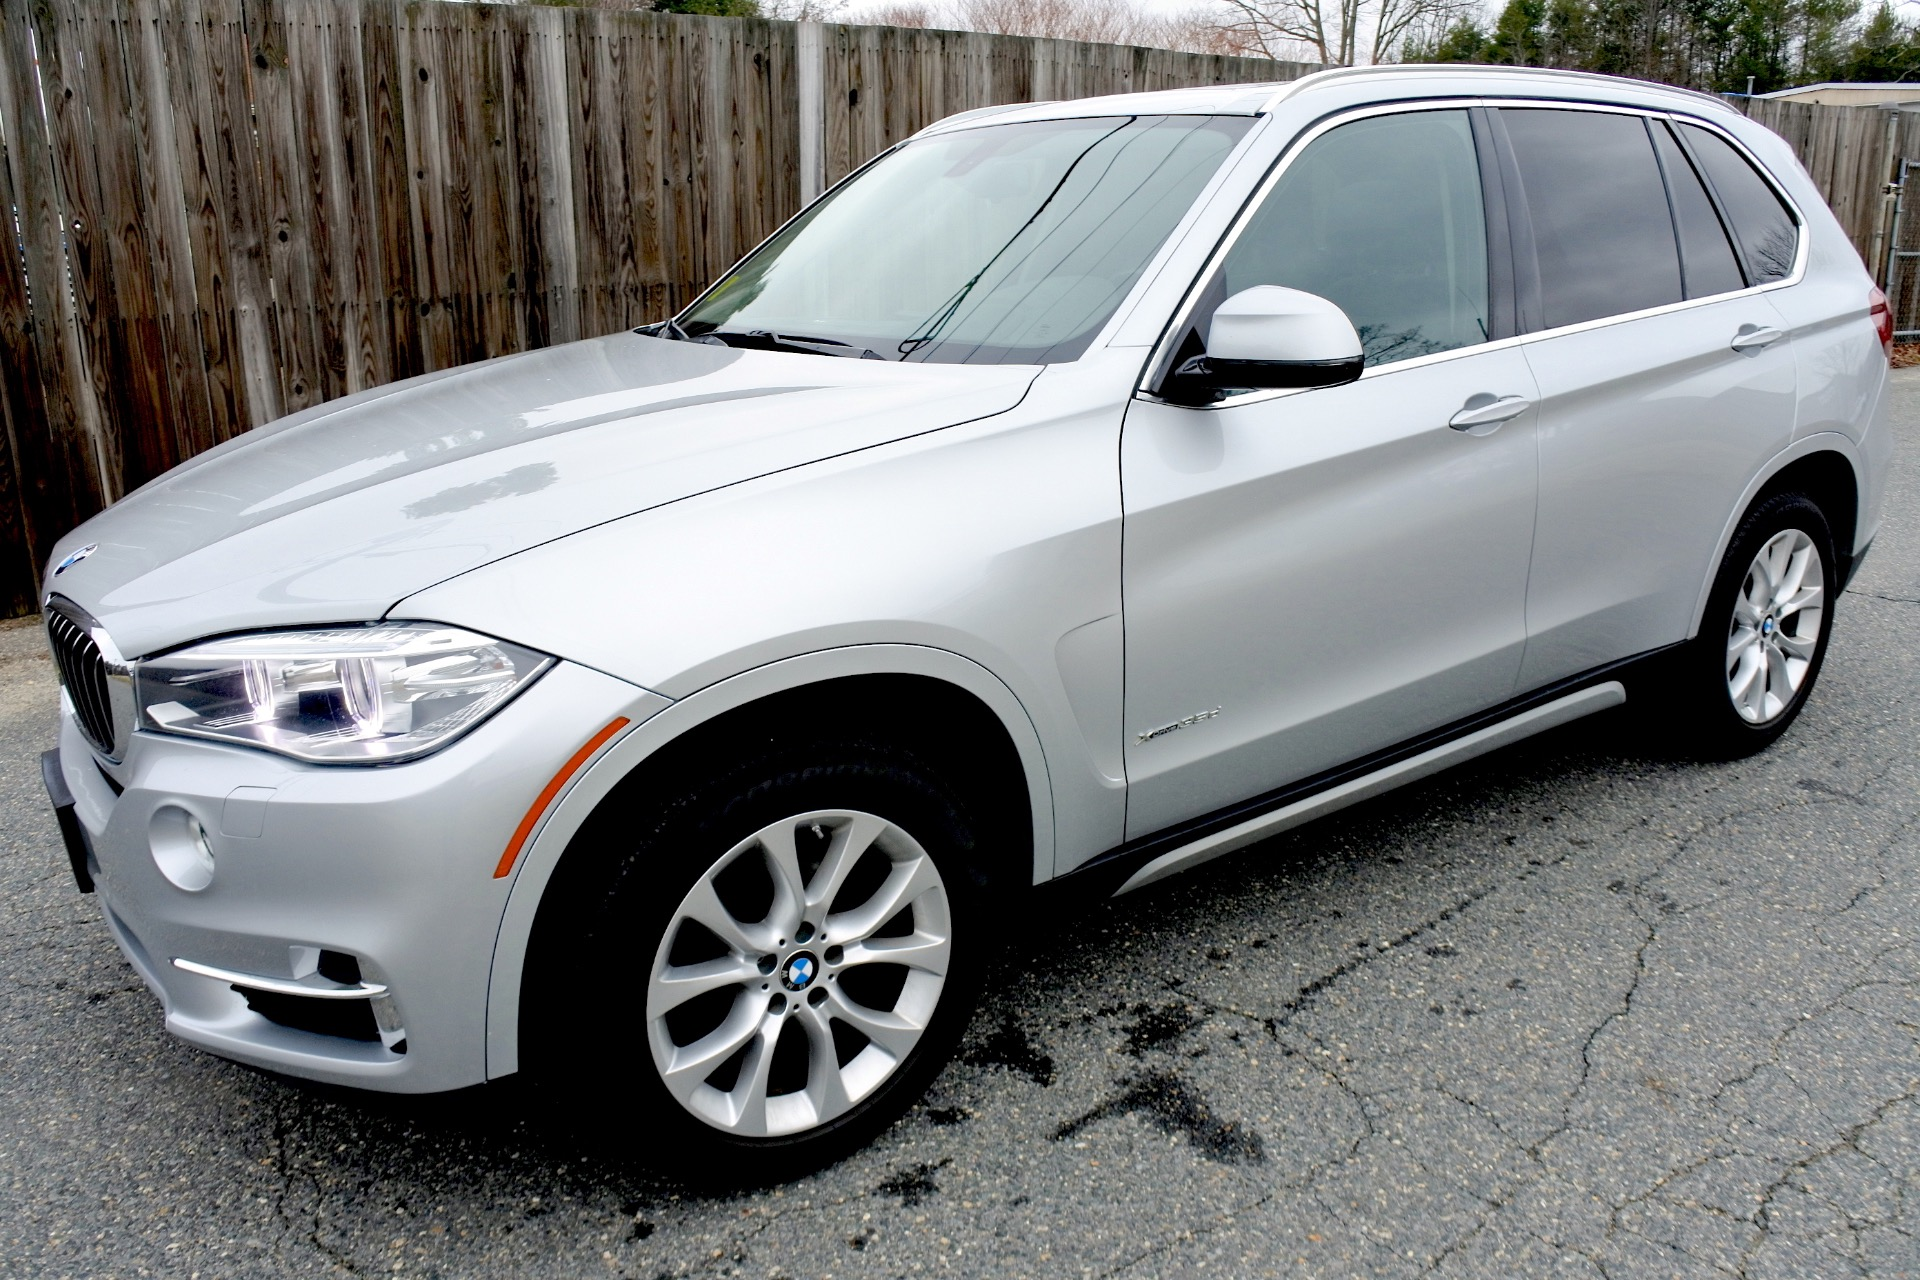 Used 2015 BMW X5 AWD 4dr xDrive35d Used 2015 BMW X5 AWD 4dr xDrive35d for sale  at Metro West Motorcars LLC in Shrewsbury MA 1